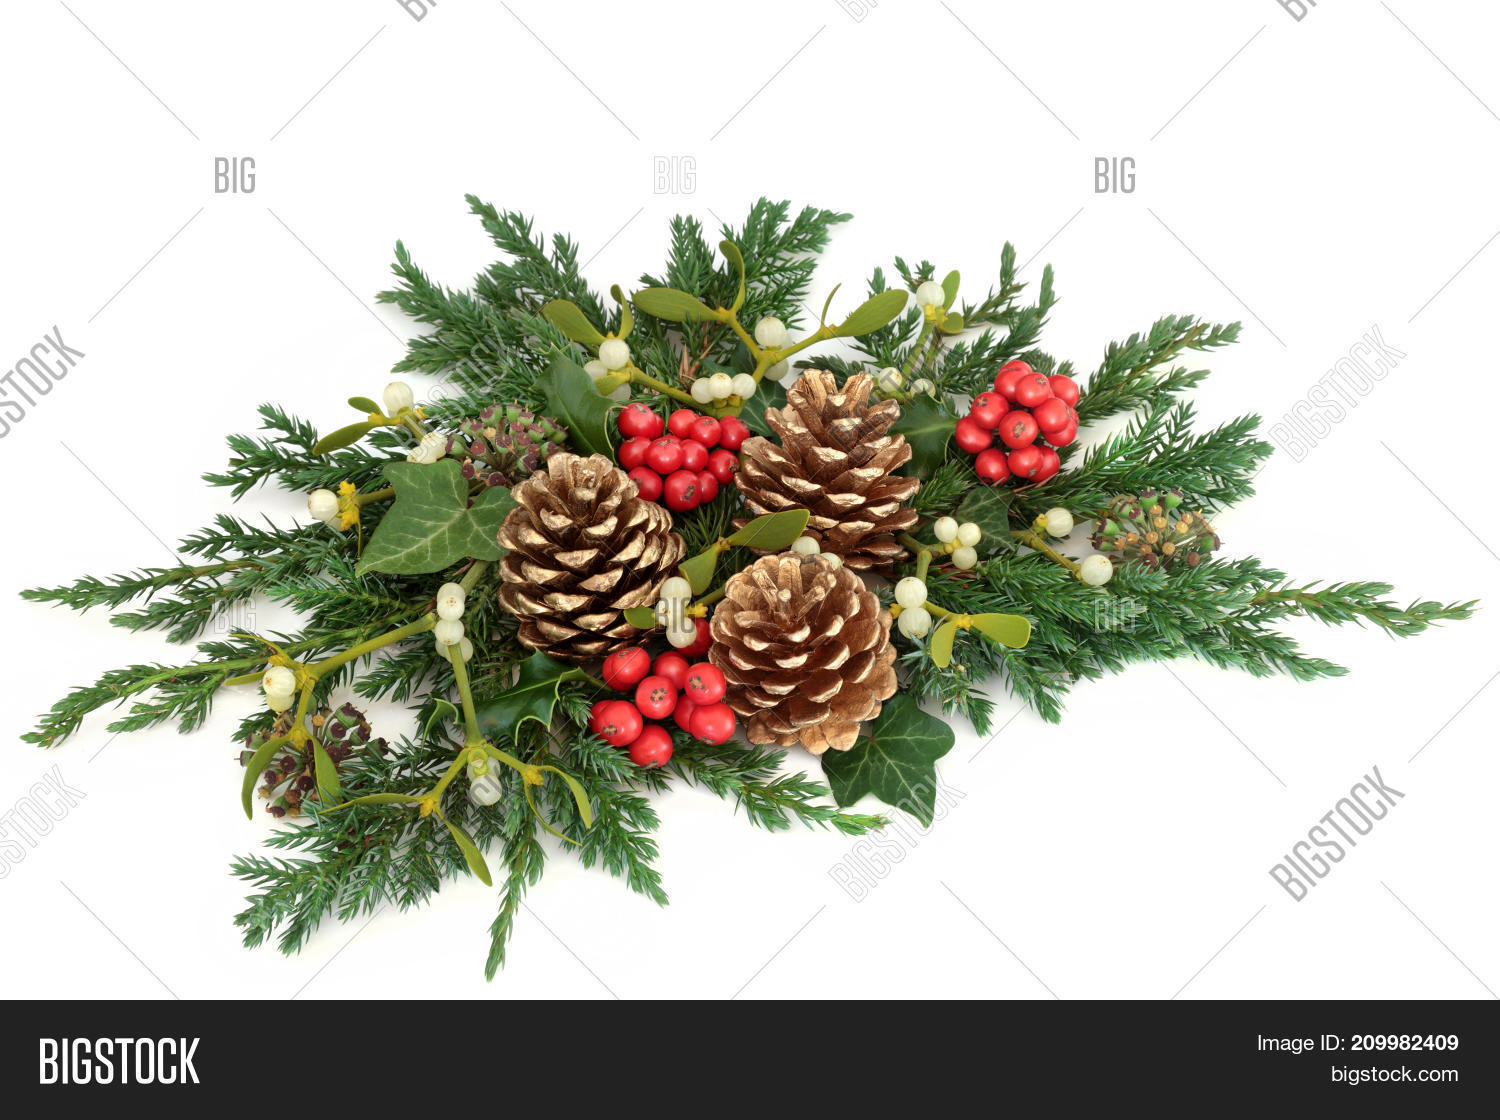 Christmas floral table decoration with holly, gold pine cones, ivy, mistletoe, cedar